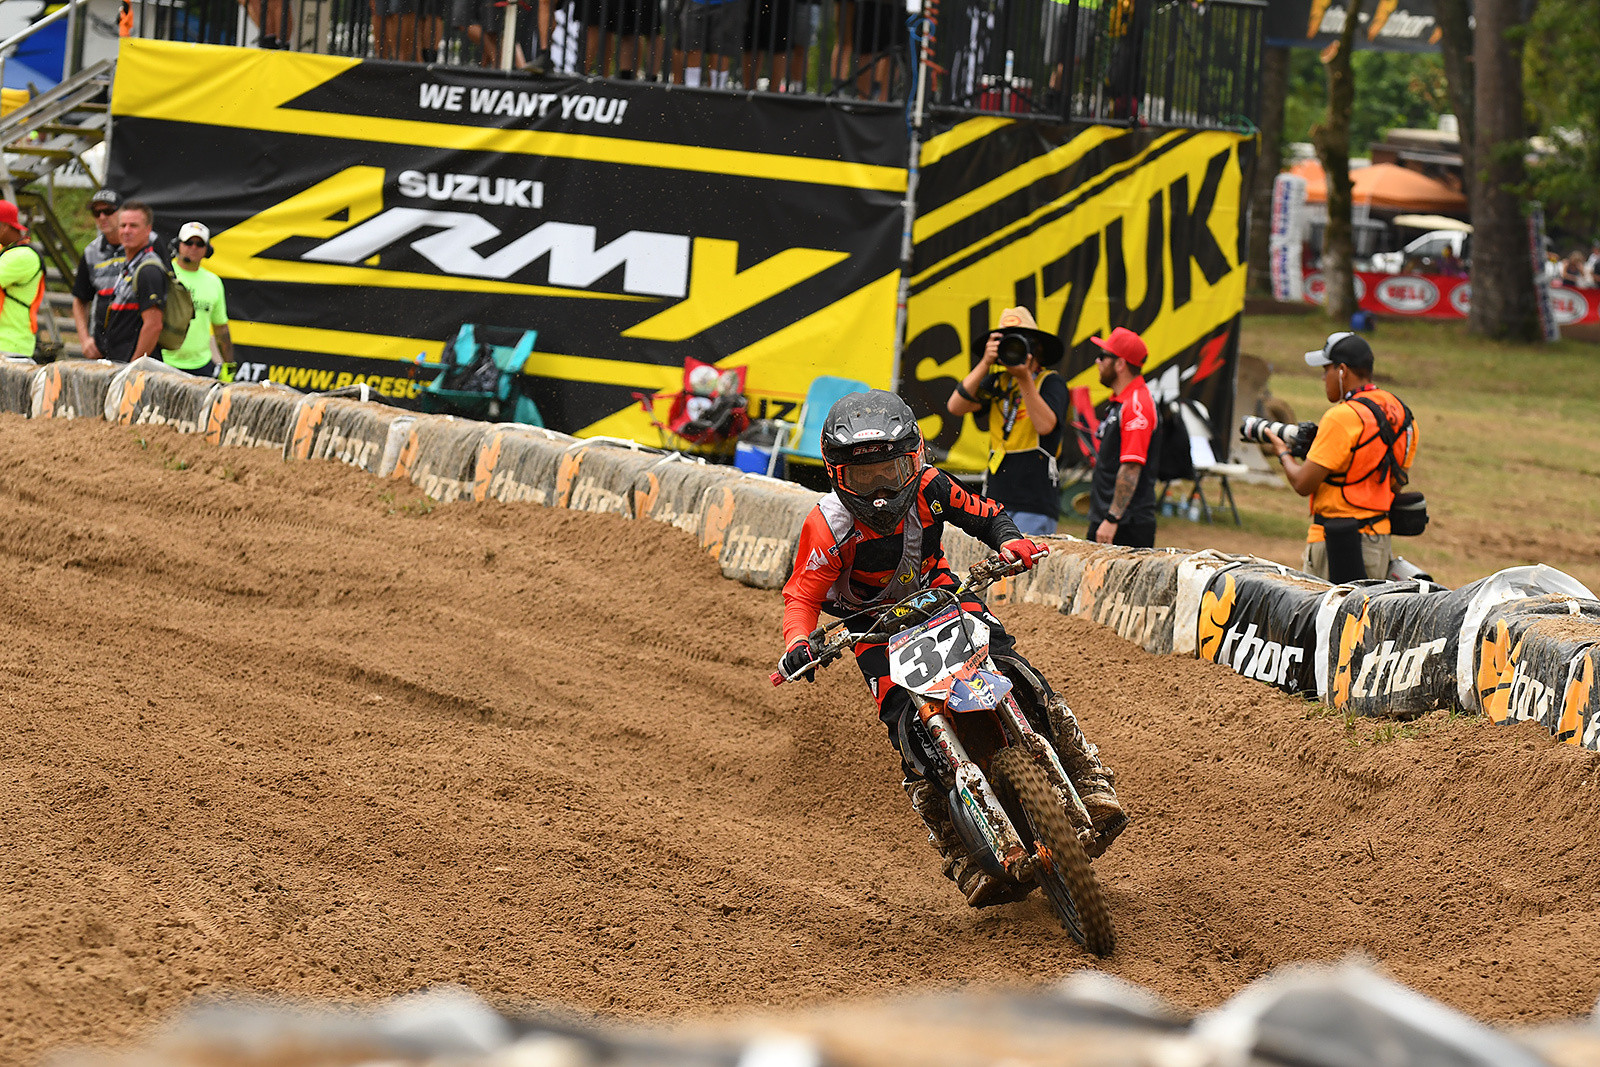 Matthew Leblanc got two top fives on the first day of Loretta Lynn's.